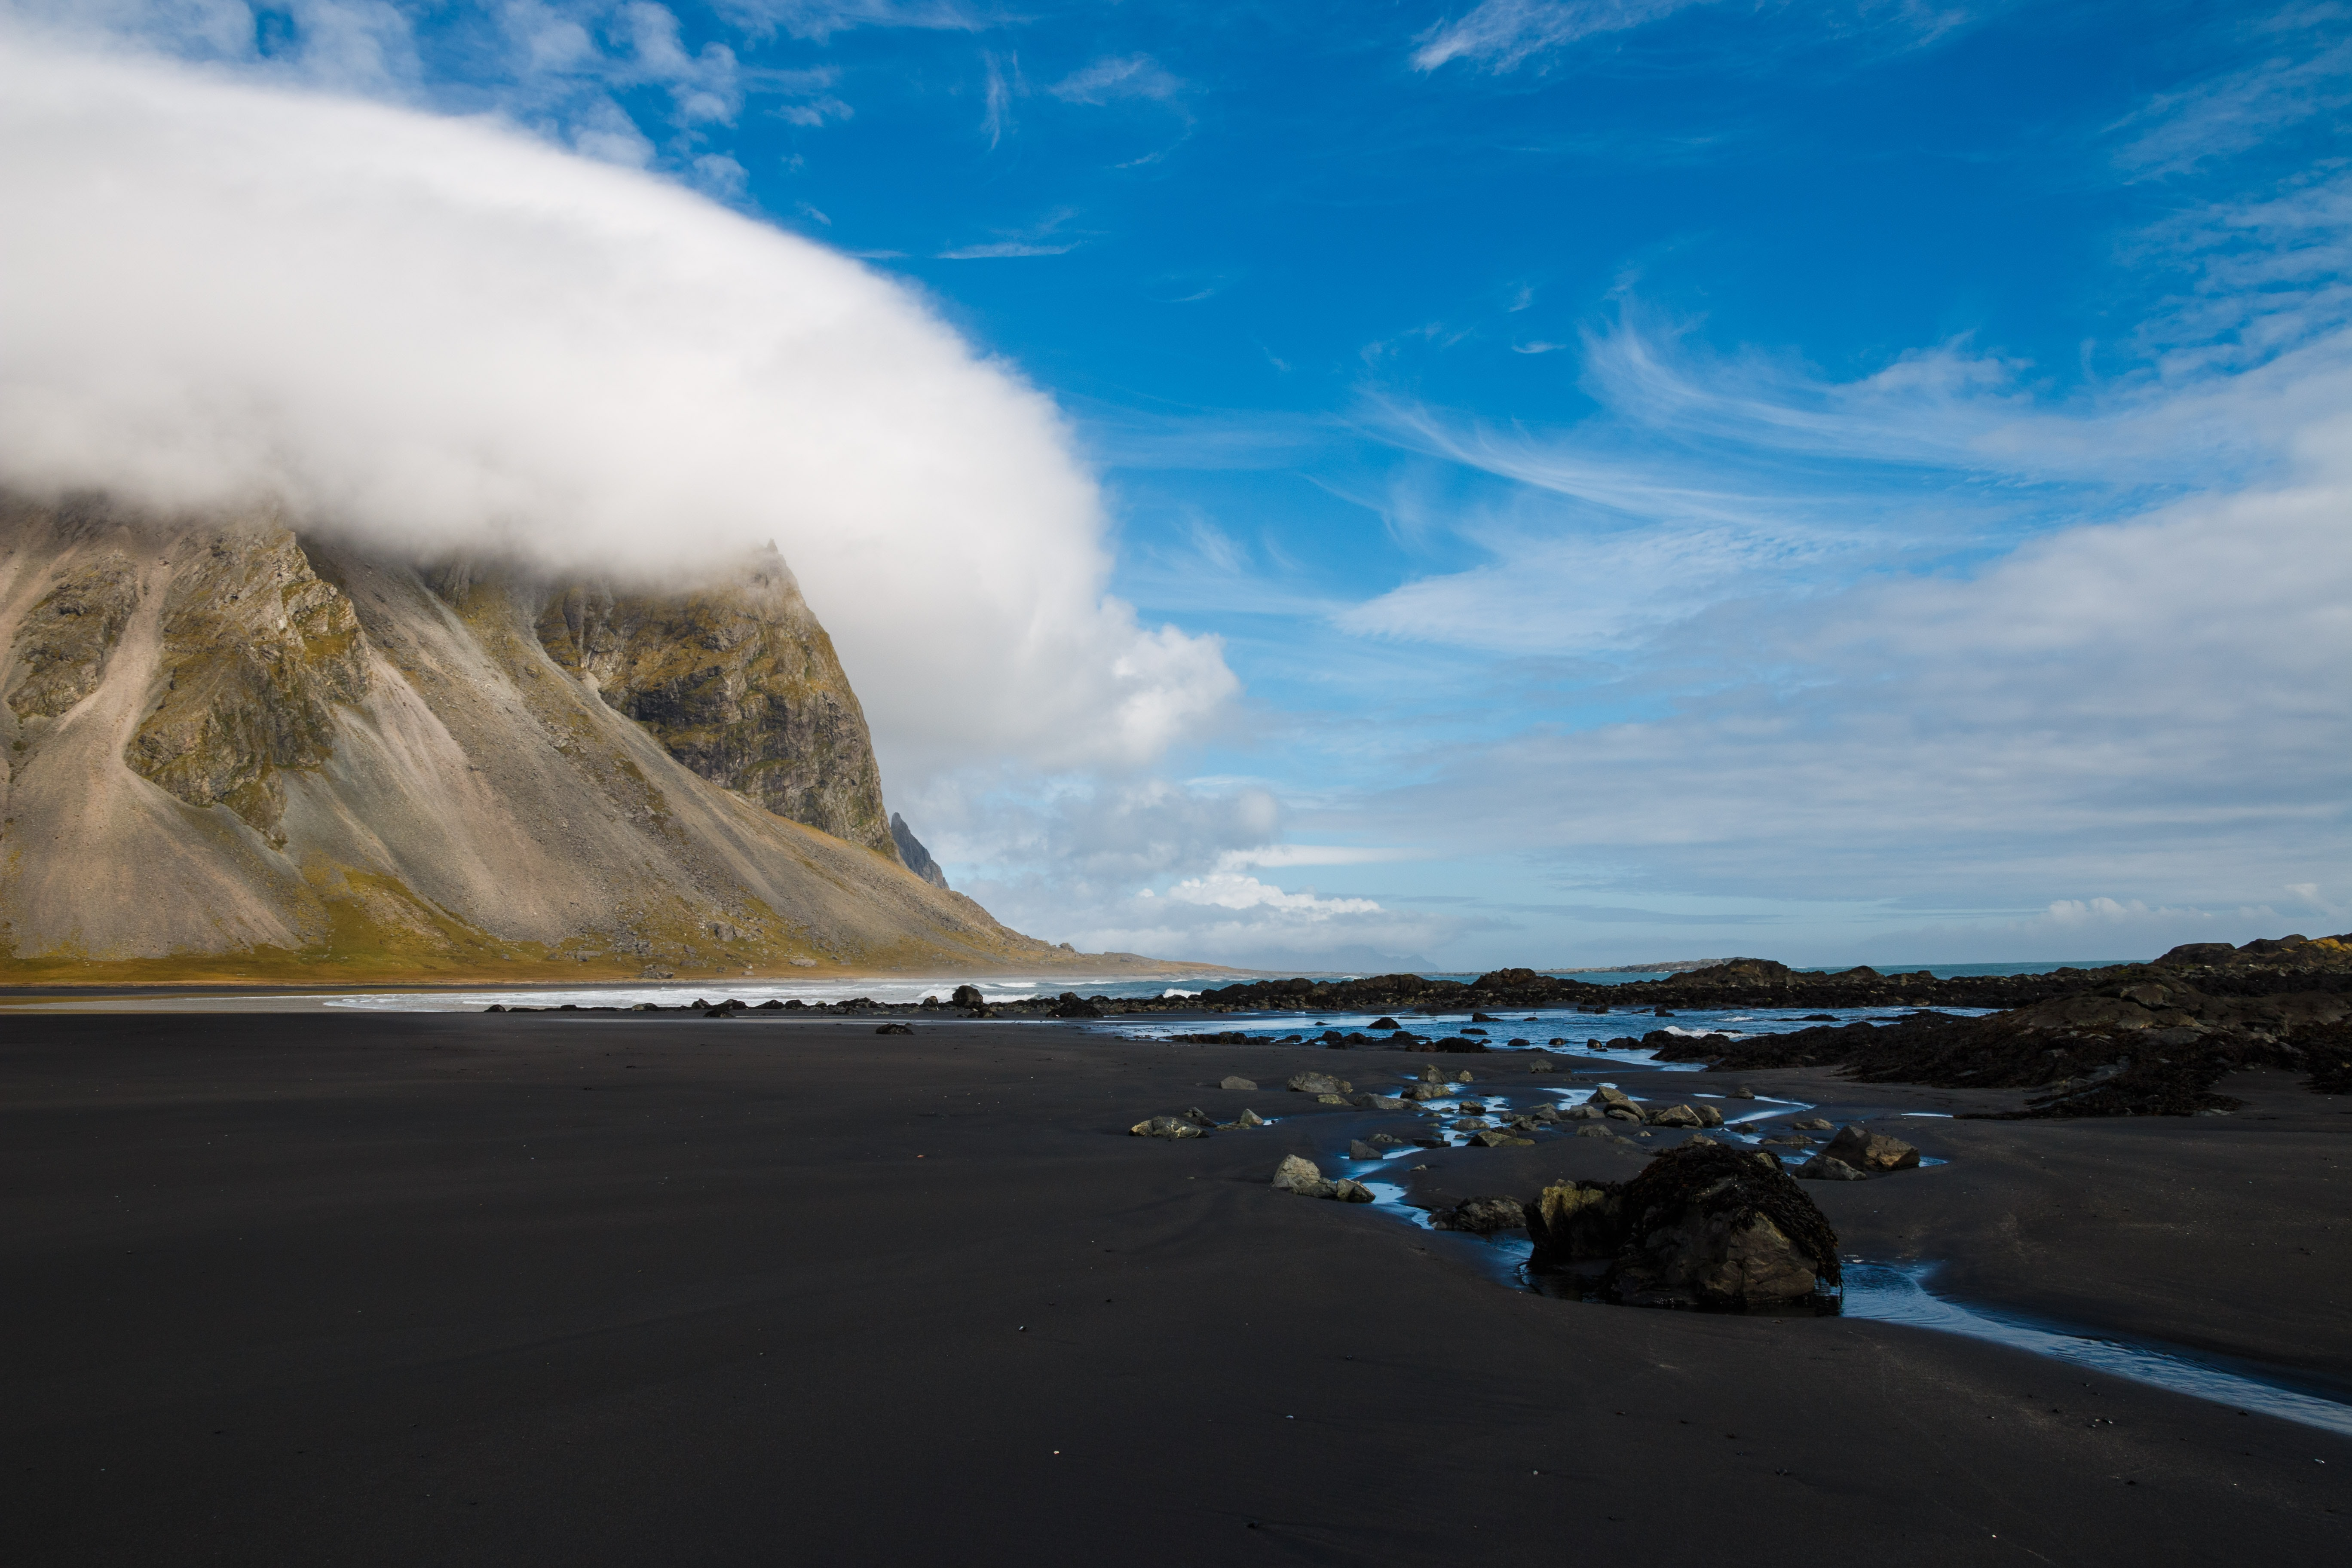 Cold, rocky shore near a mountain covered in clouds